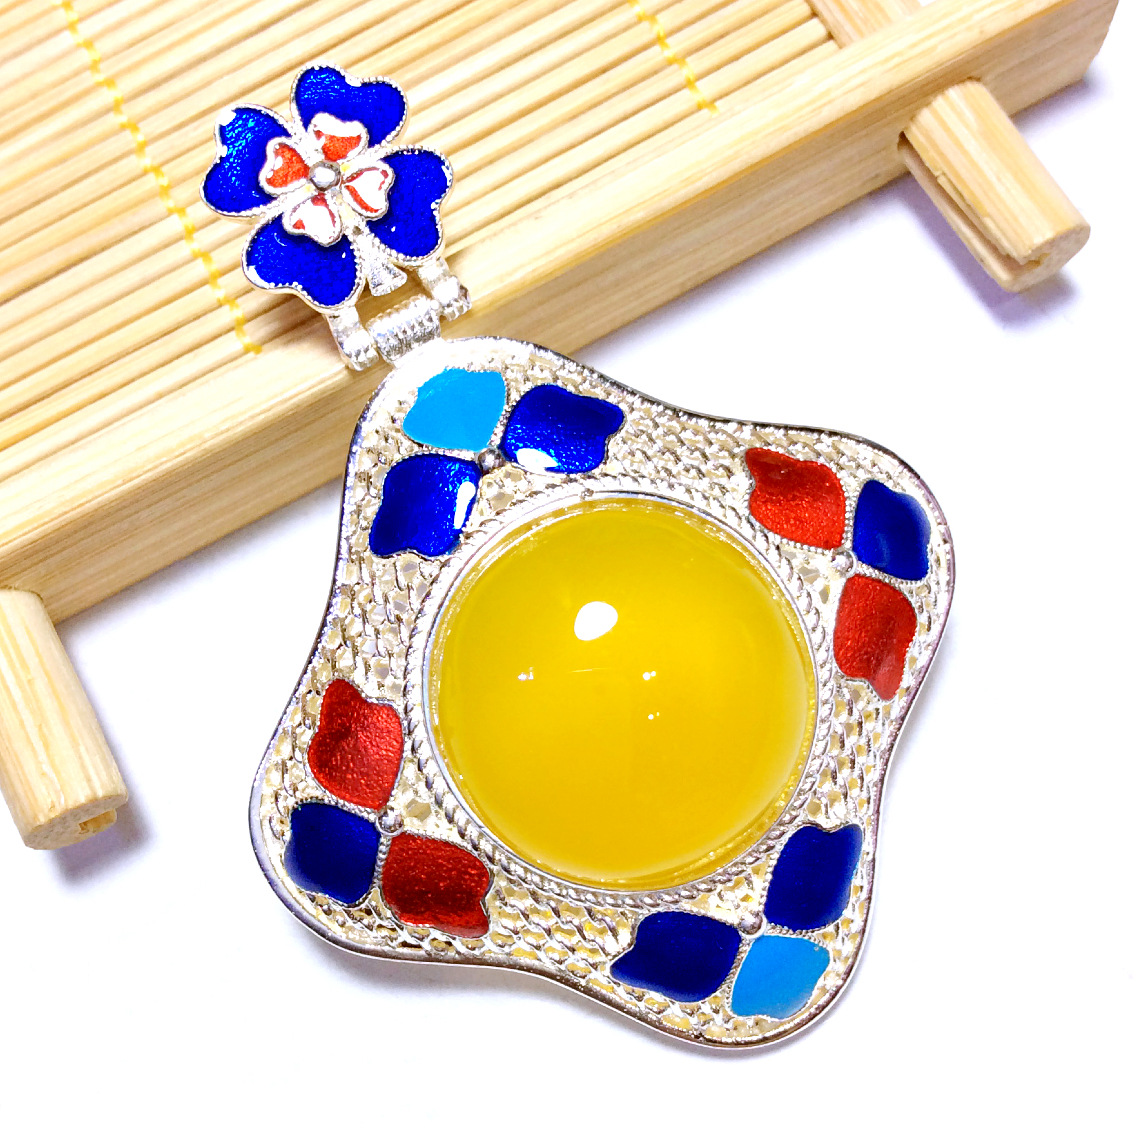 [S925] silver inlaid natural Cloisonne Filigree Pendant ornaments nail